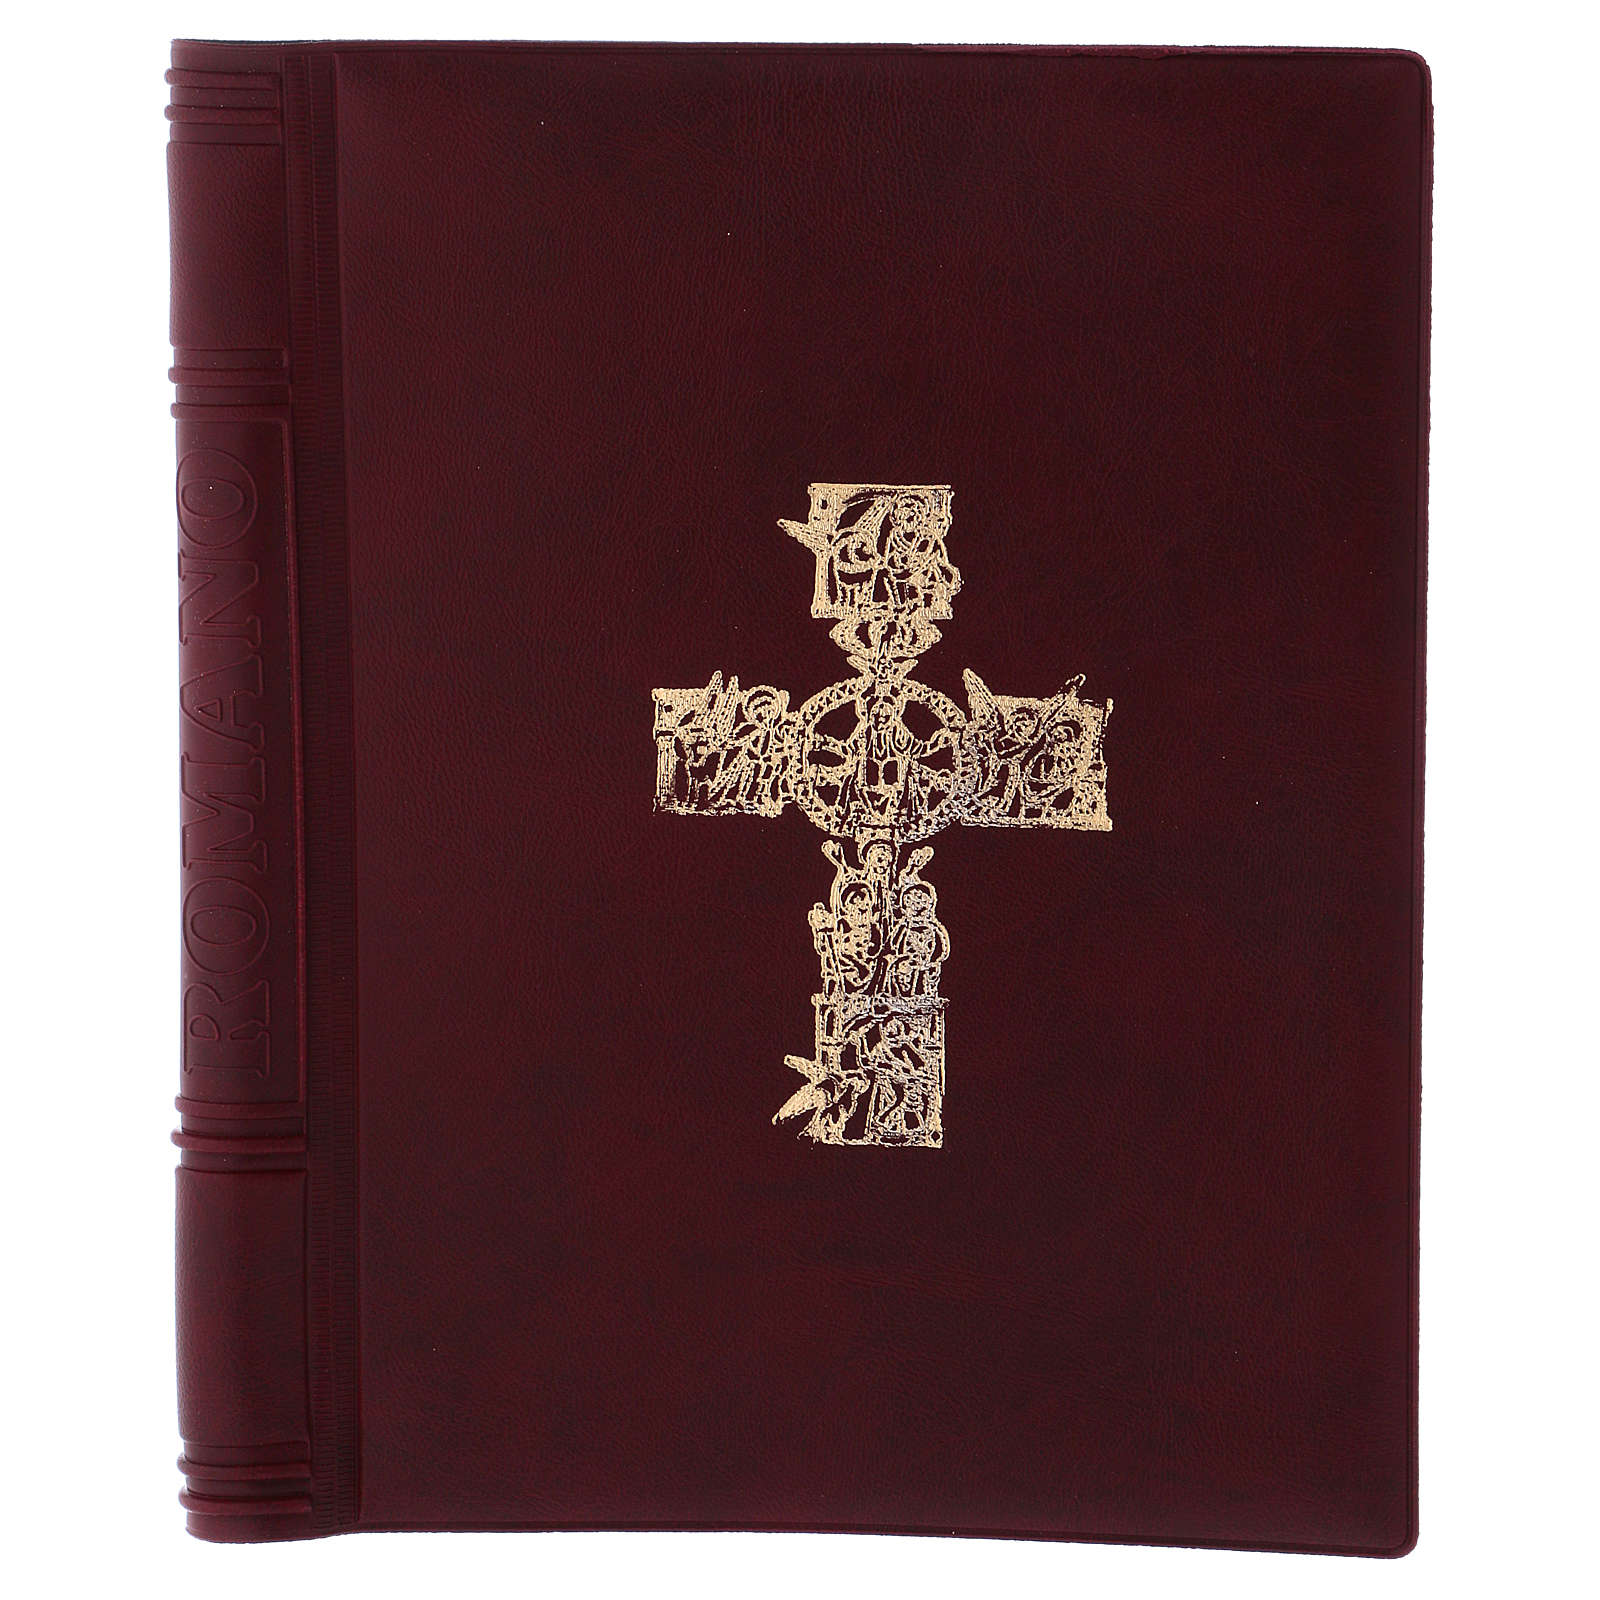 Slipcase for Roman Missal 25,5x18 cm 4